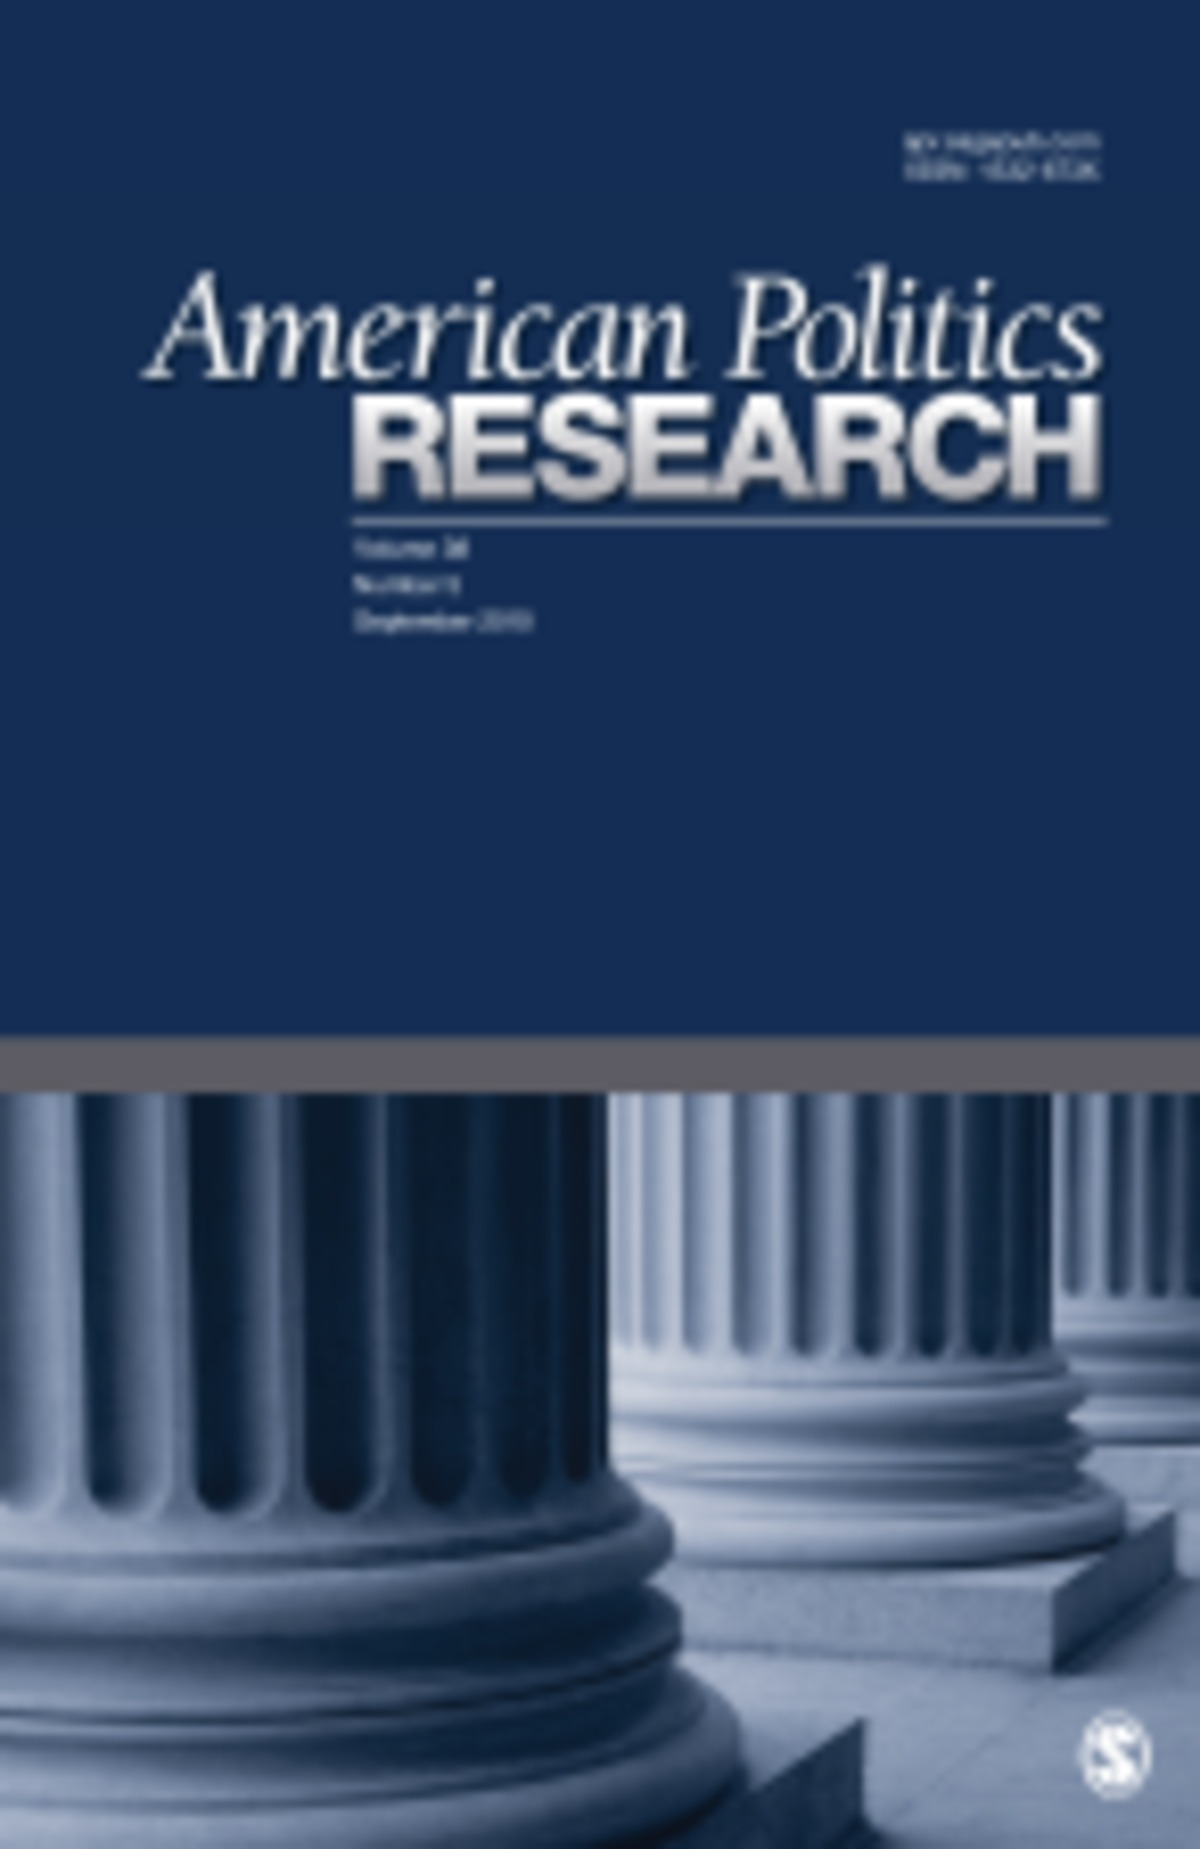 lossy-page1-1200px-American_Politics_Research.tif.jpg